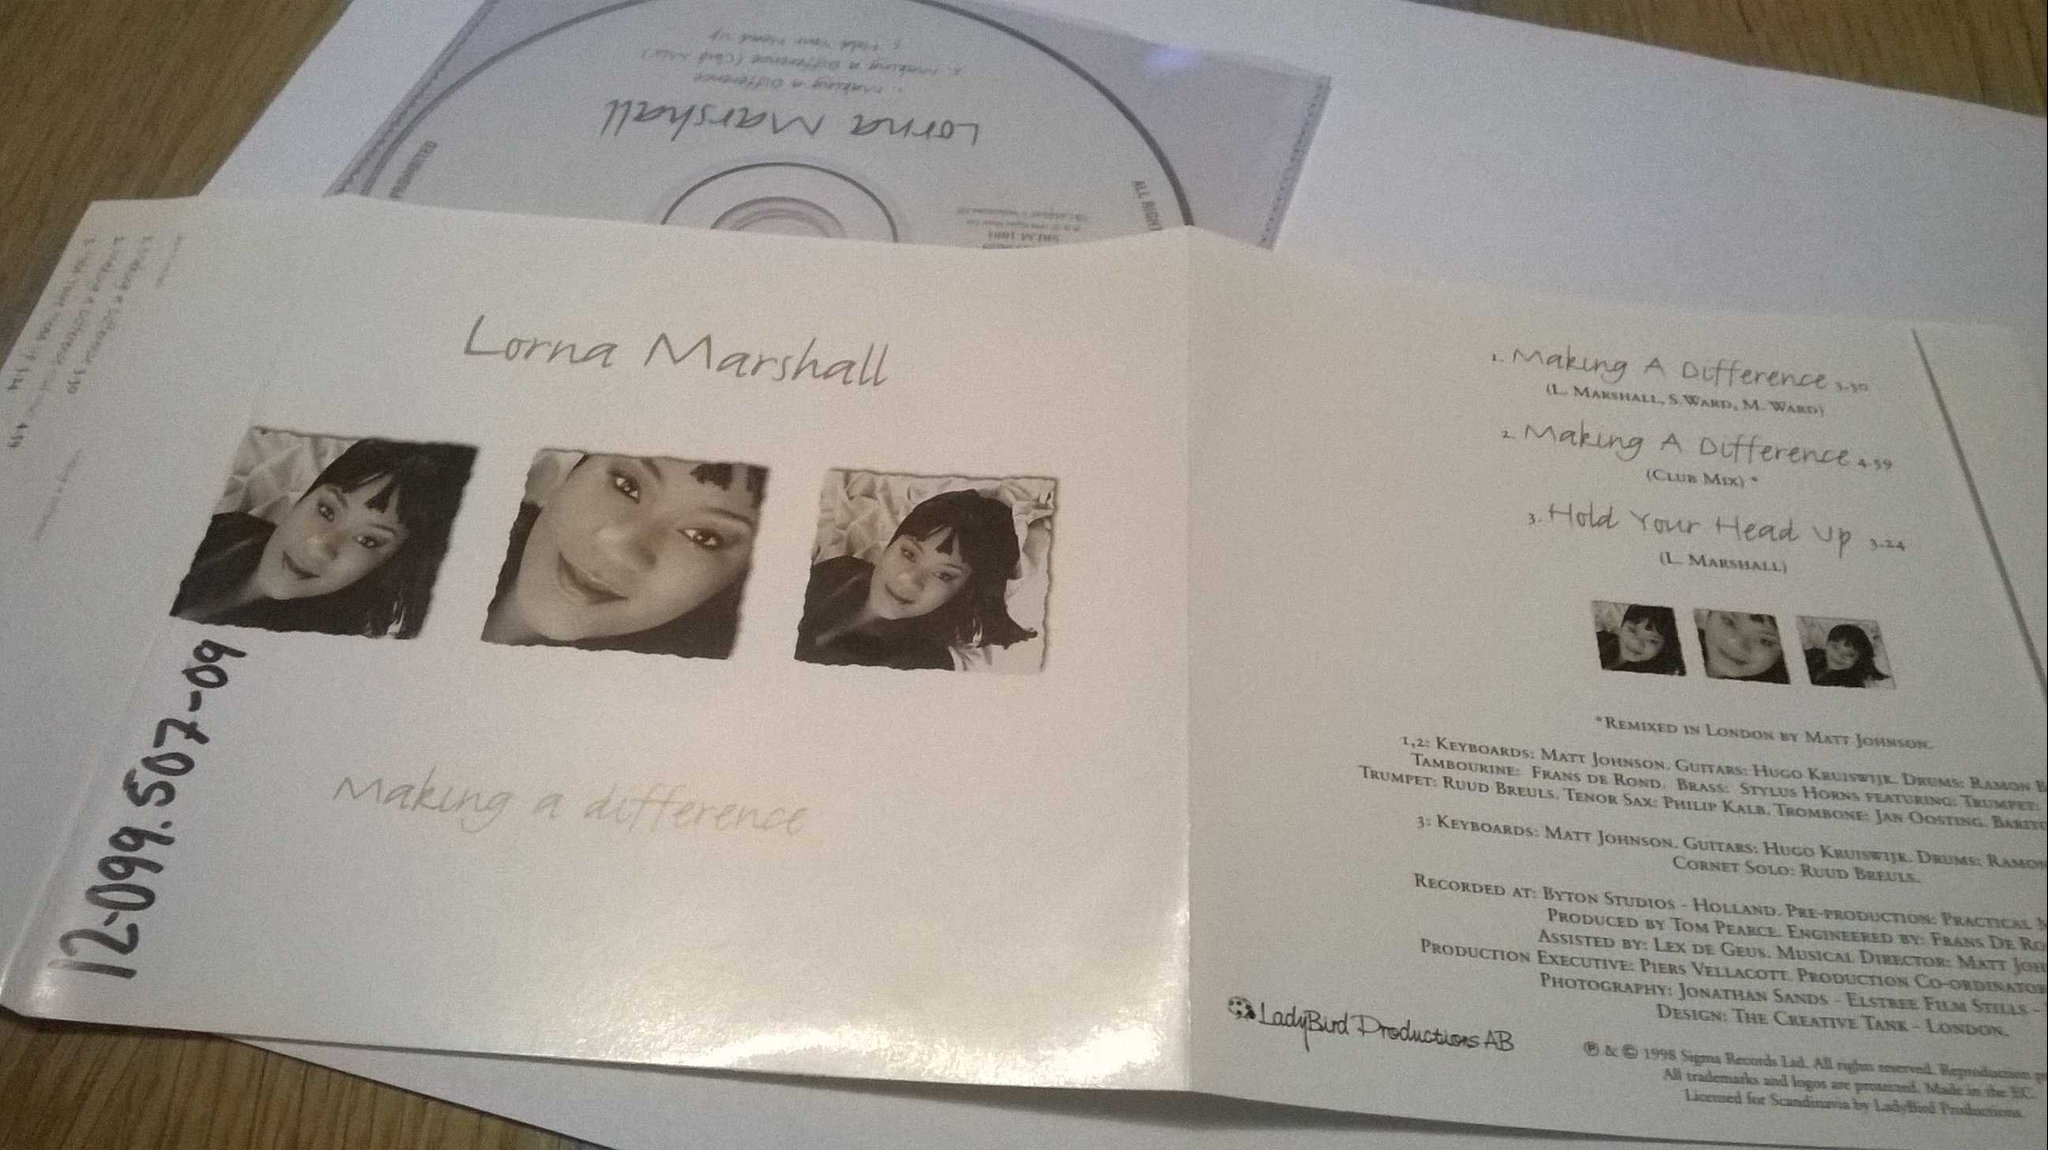 Lorna Marshall - Making A Difference, singel CD